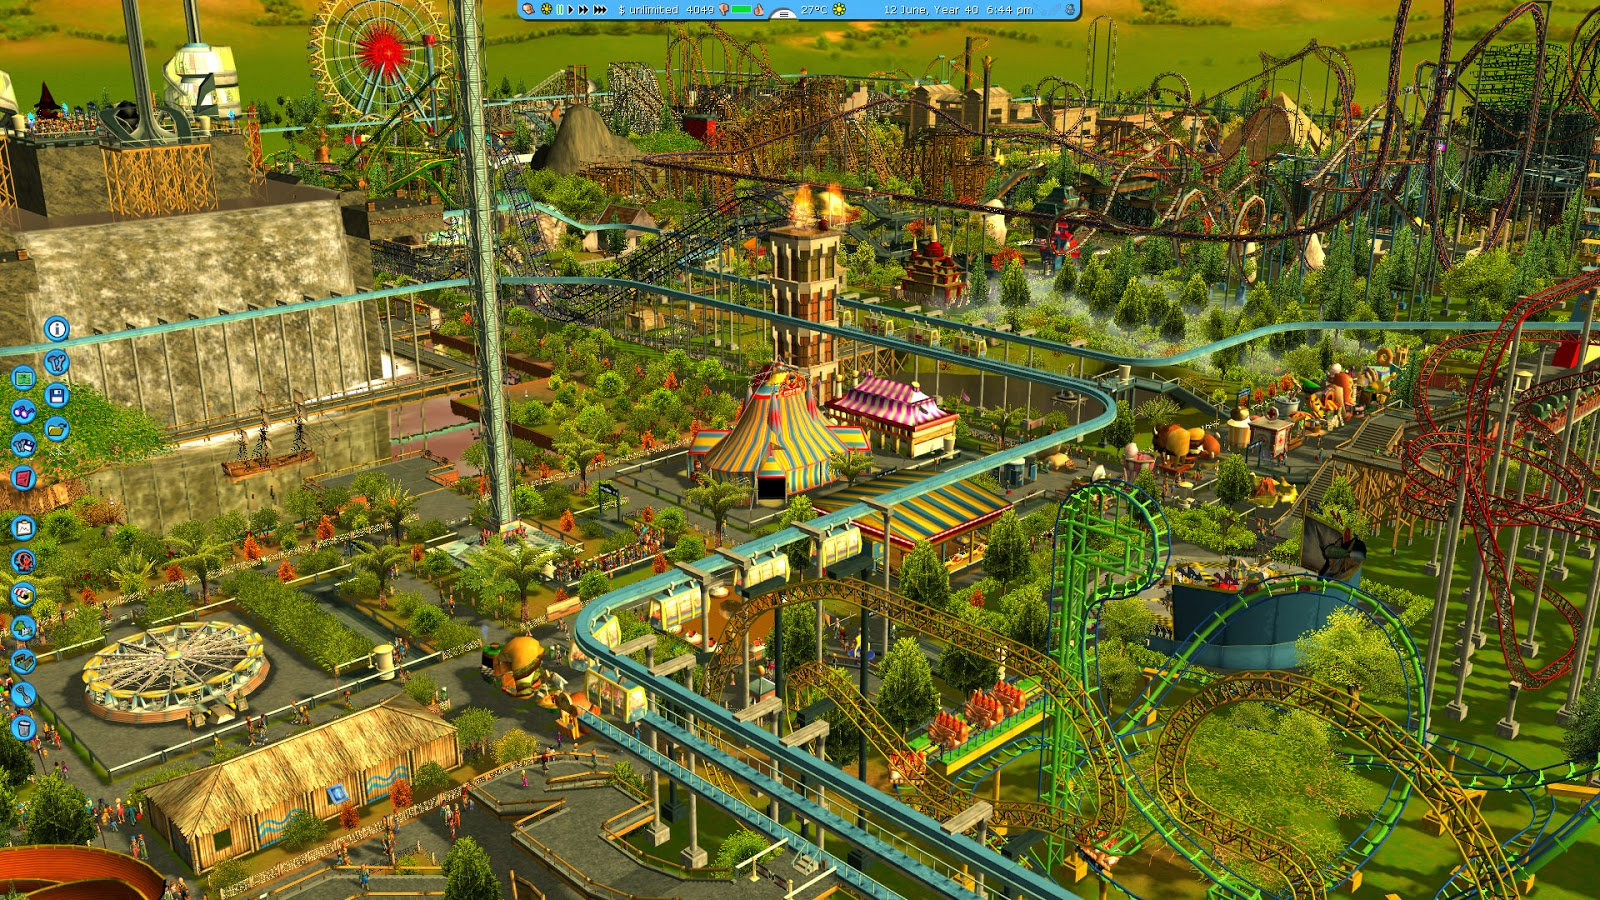 Roller Coaster Tycoon 3 Download